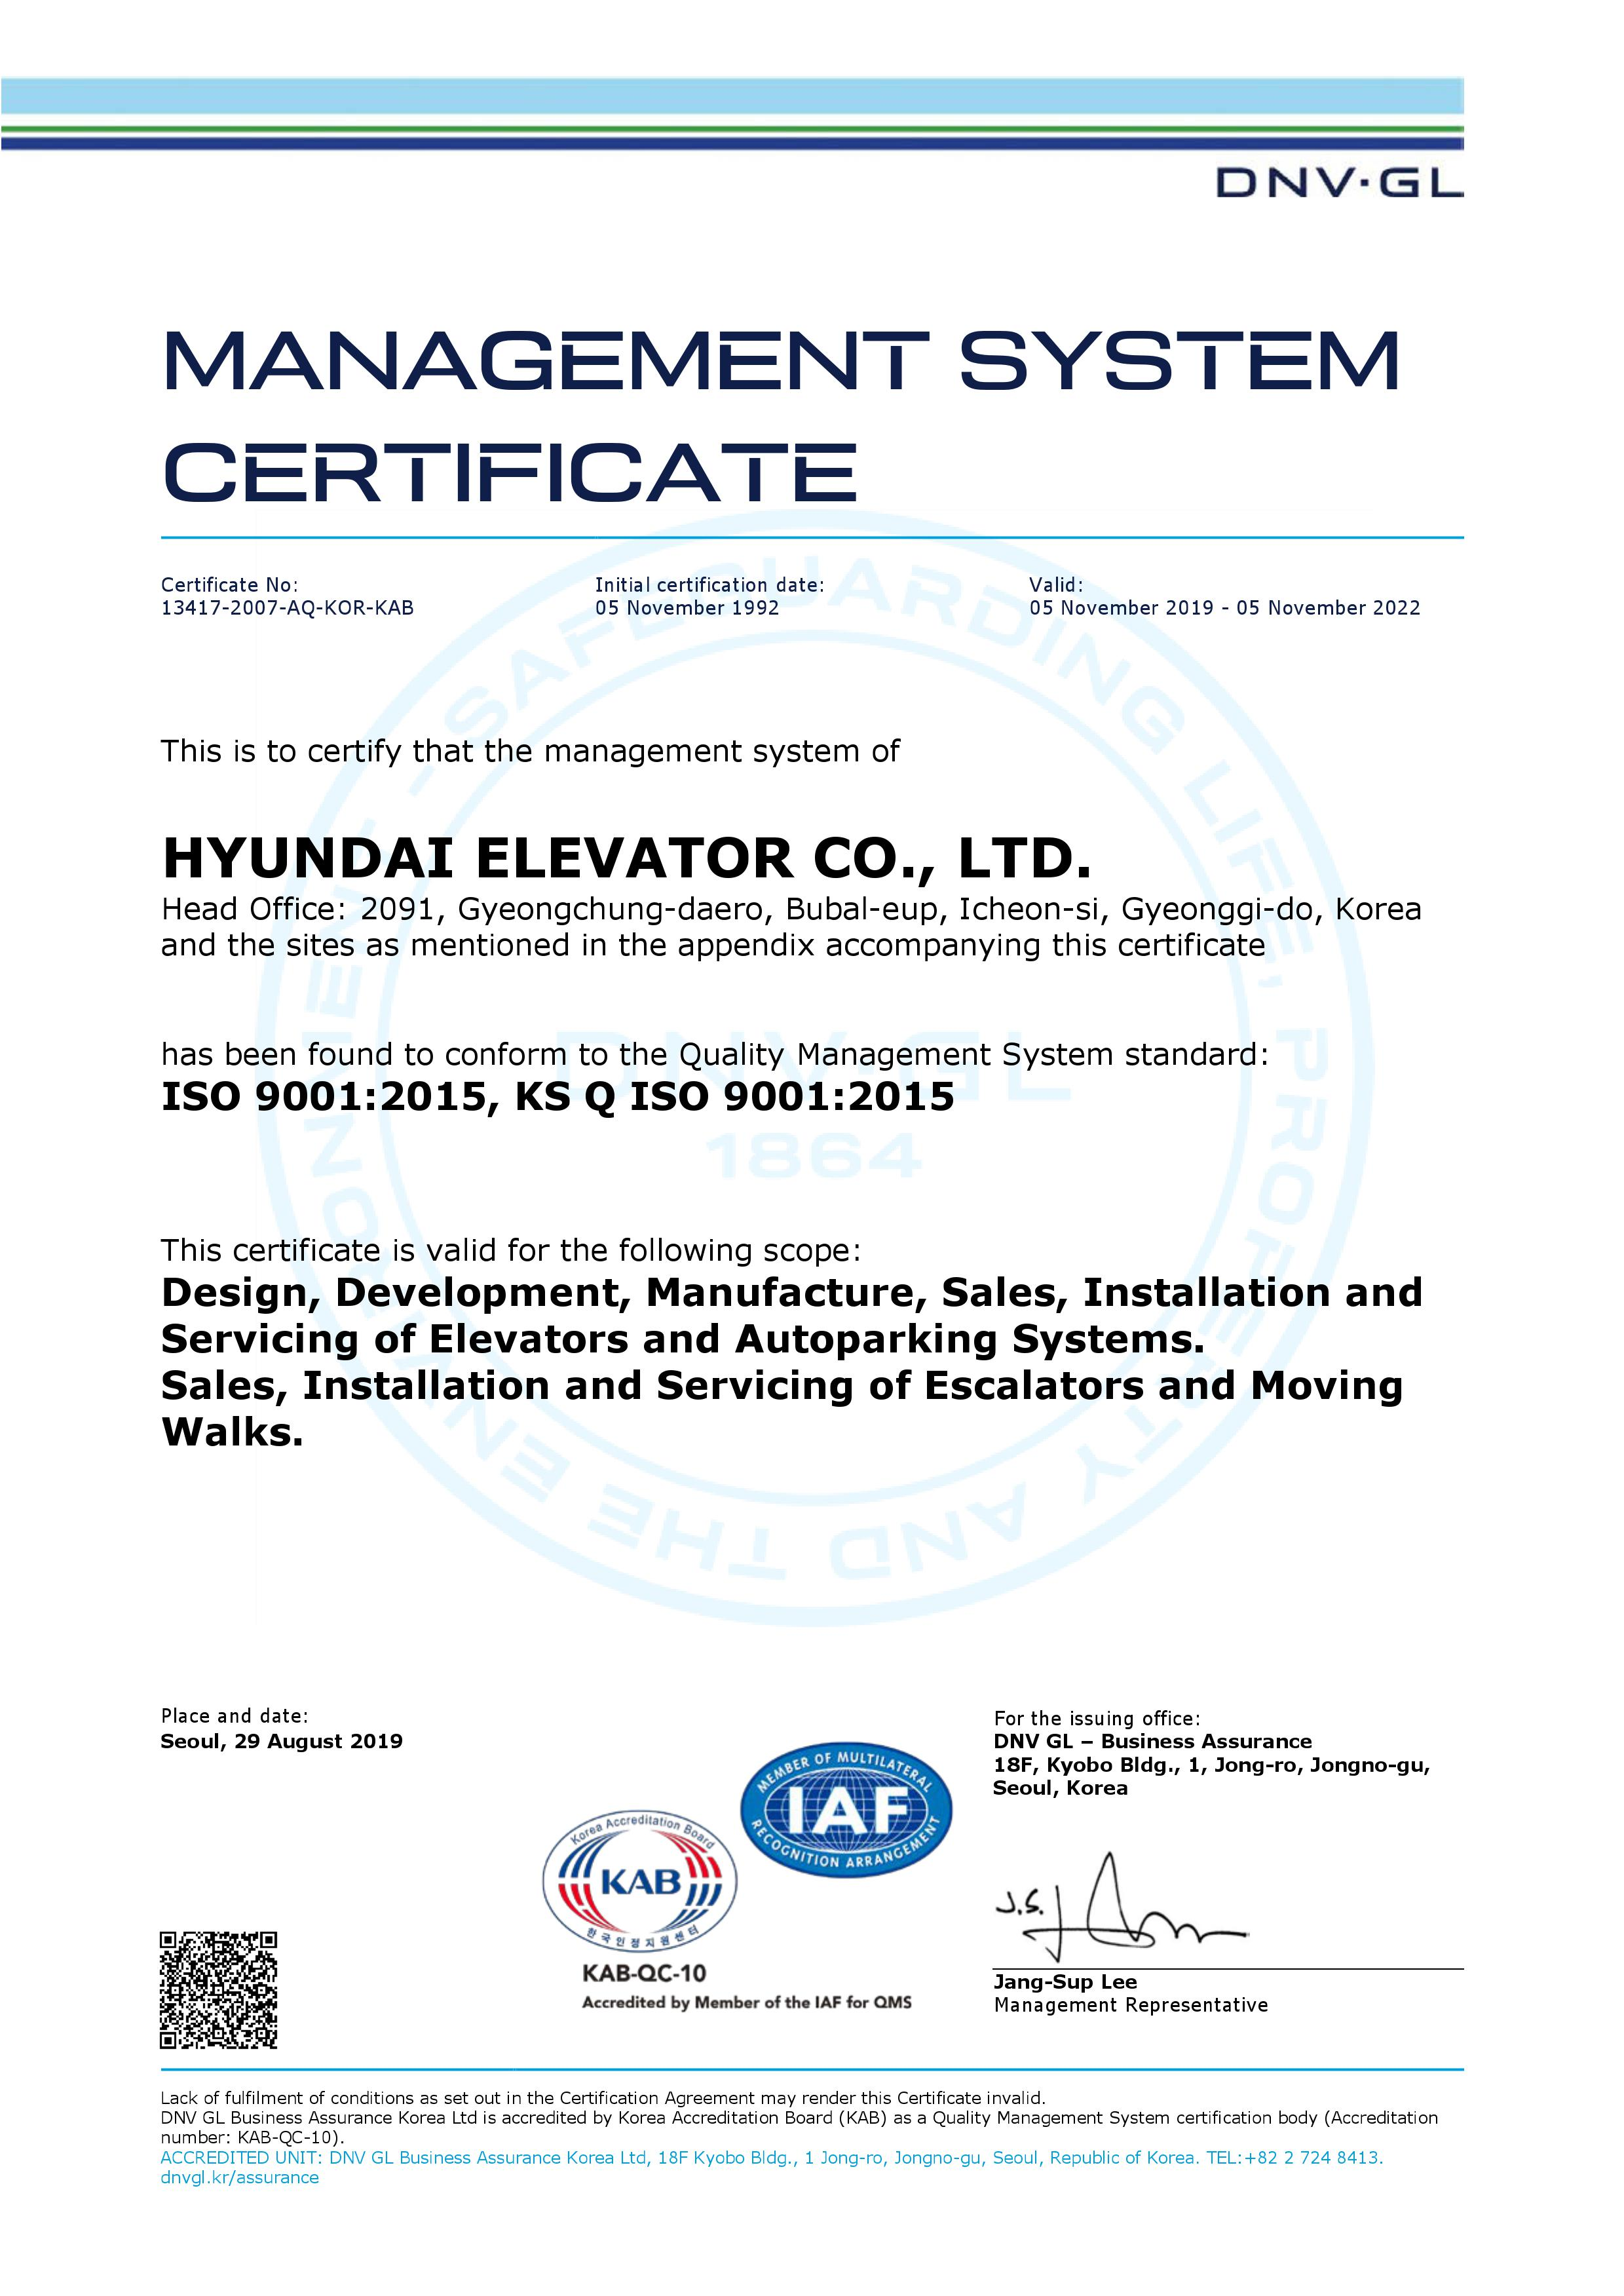 Chứng chỉ ISO 9001:2015